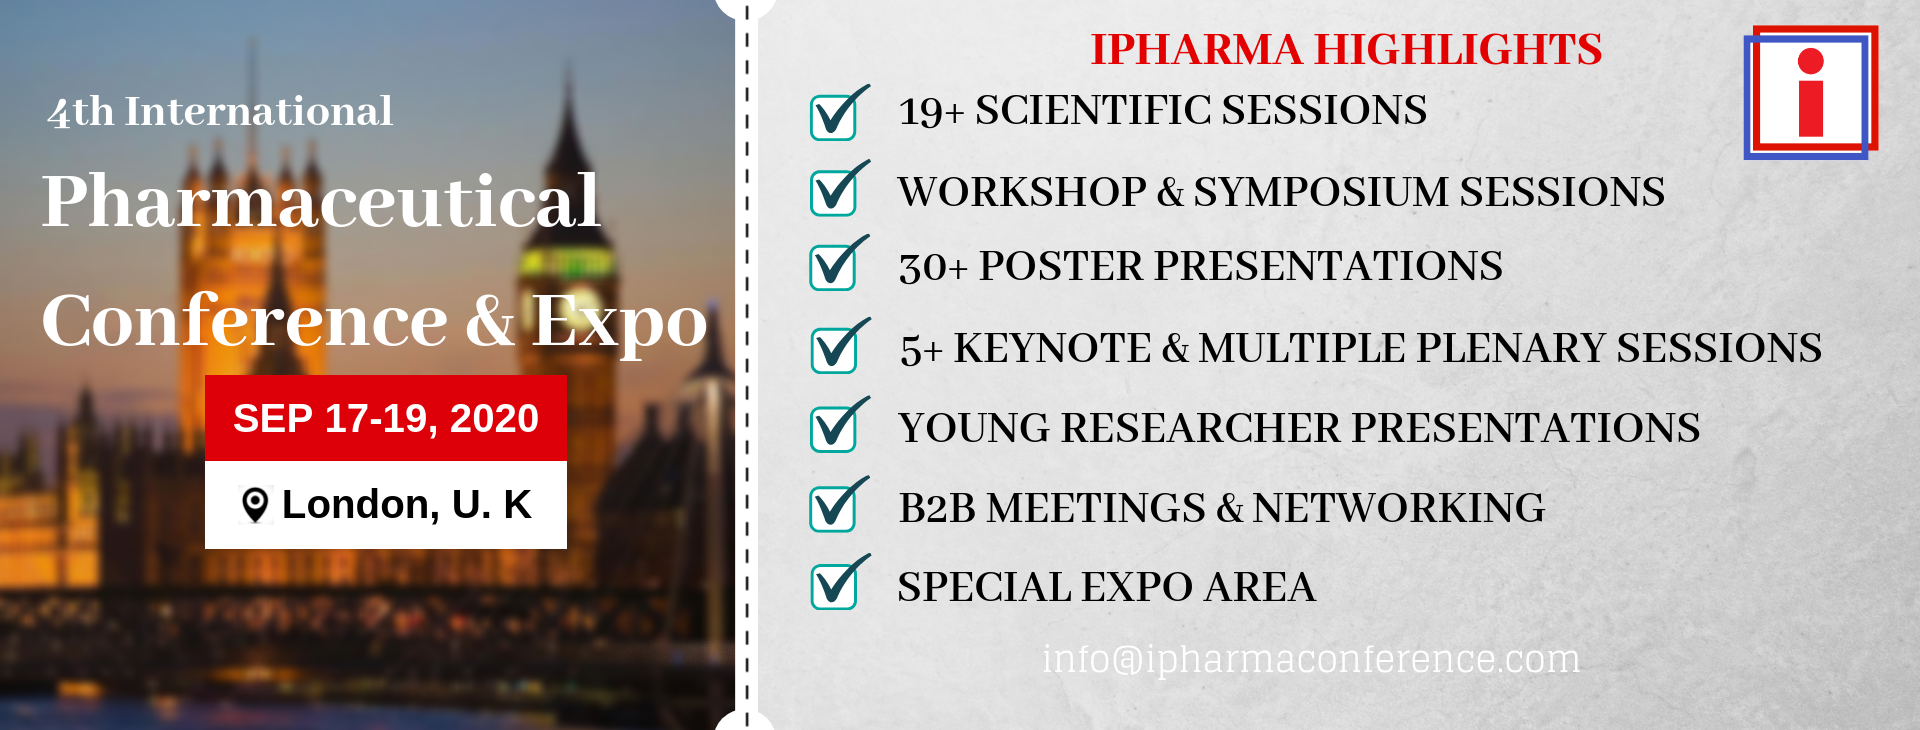 ipharma banner for conference highlights